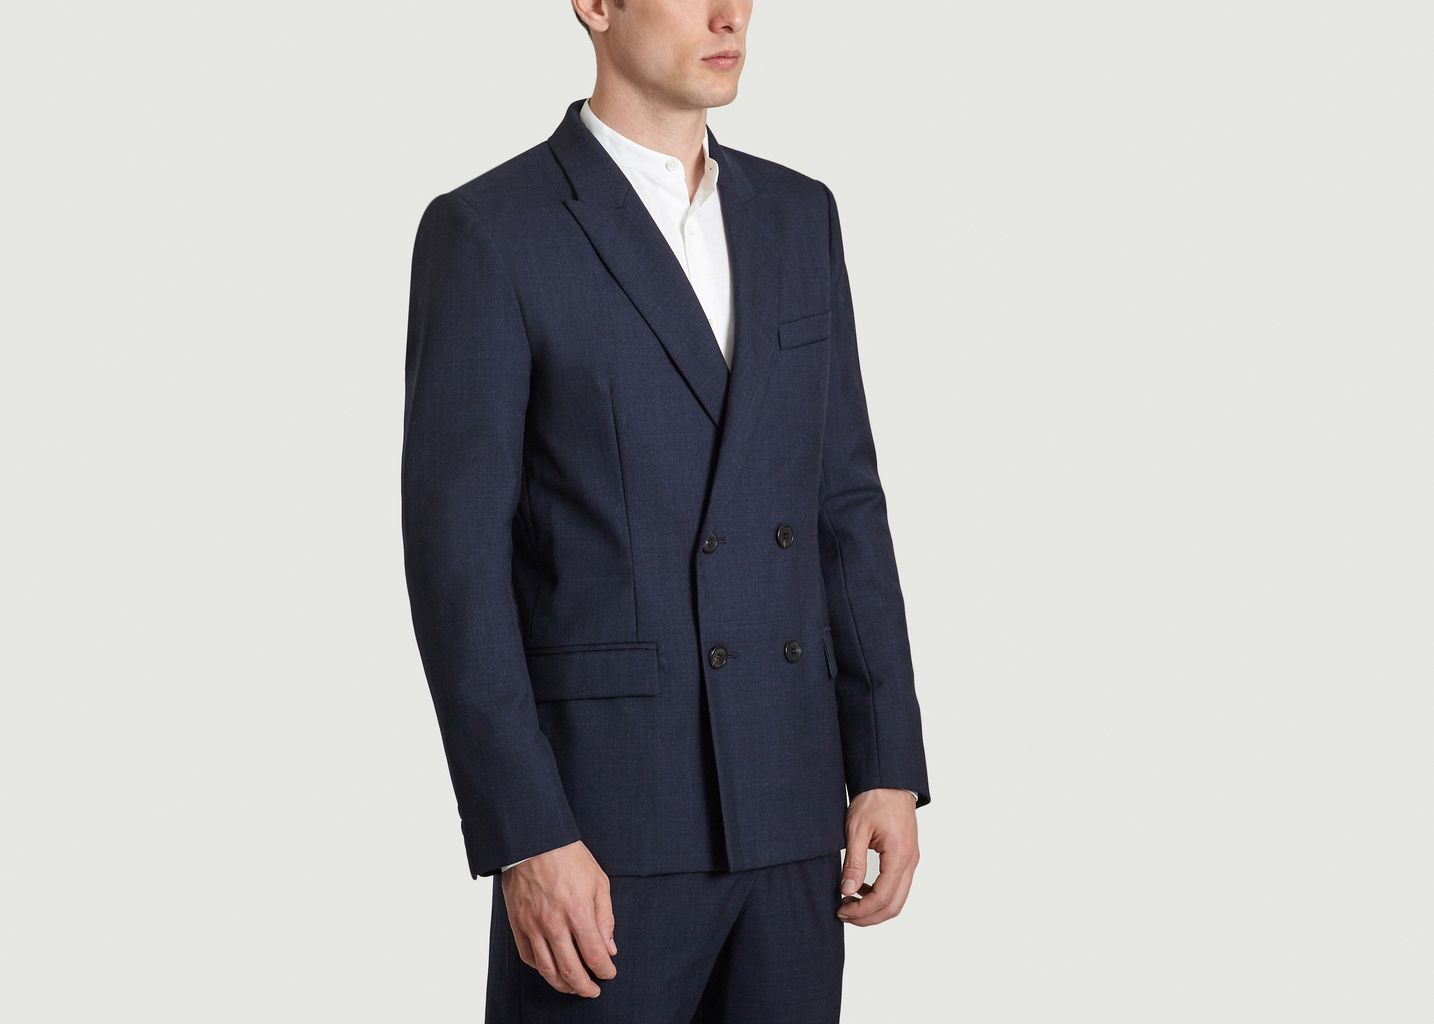 Veste de Costume Croisée Vitale Barberis - L'Exception Paris